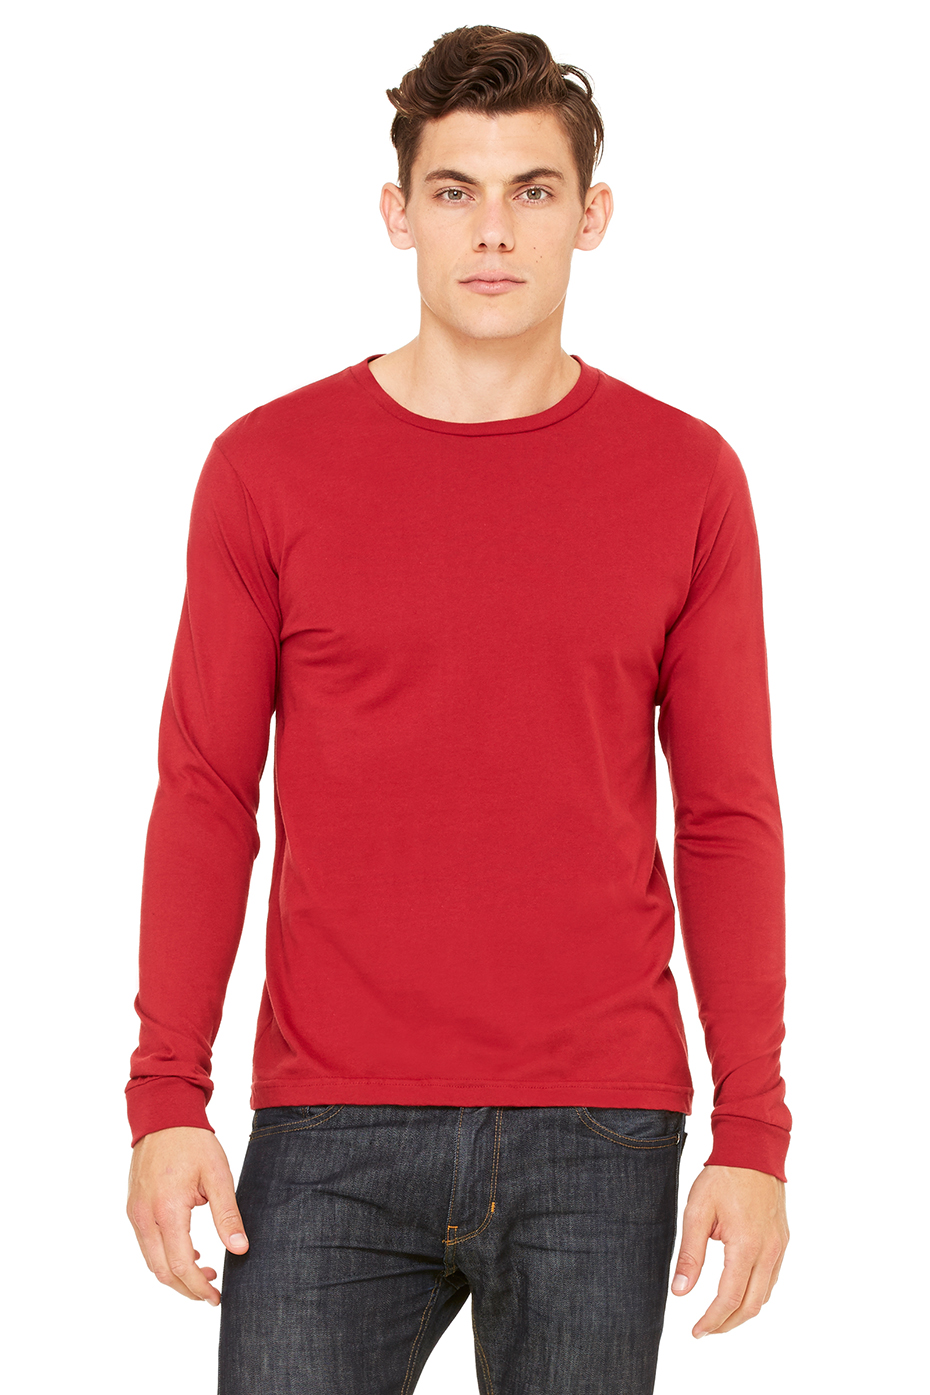 Shop the Latest Collection of Long Sleeve T-Shirts for Men Online at 0549sahibi.tk FREE SHIPPING AVAILABLE! Levi's® Men's Graphic-Print Long Sleeved T-Shirt Levi's® Men's Red .